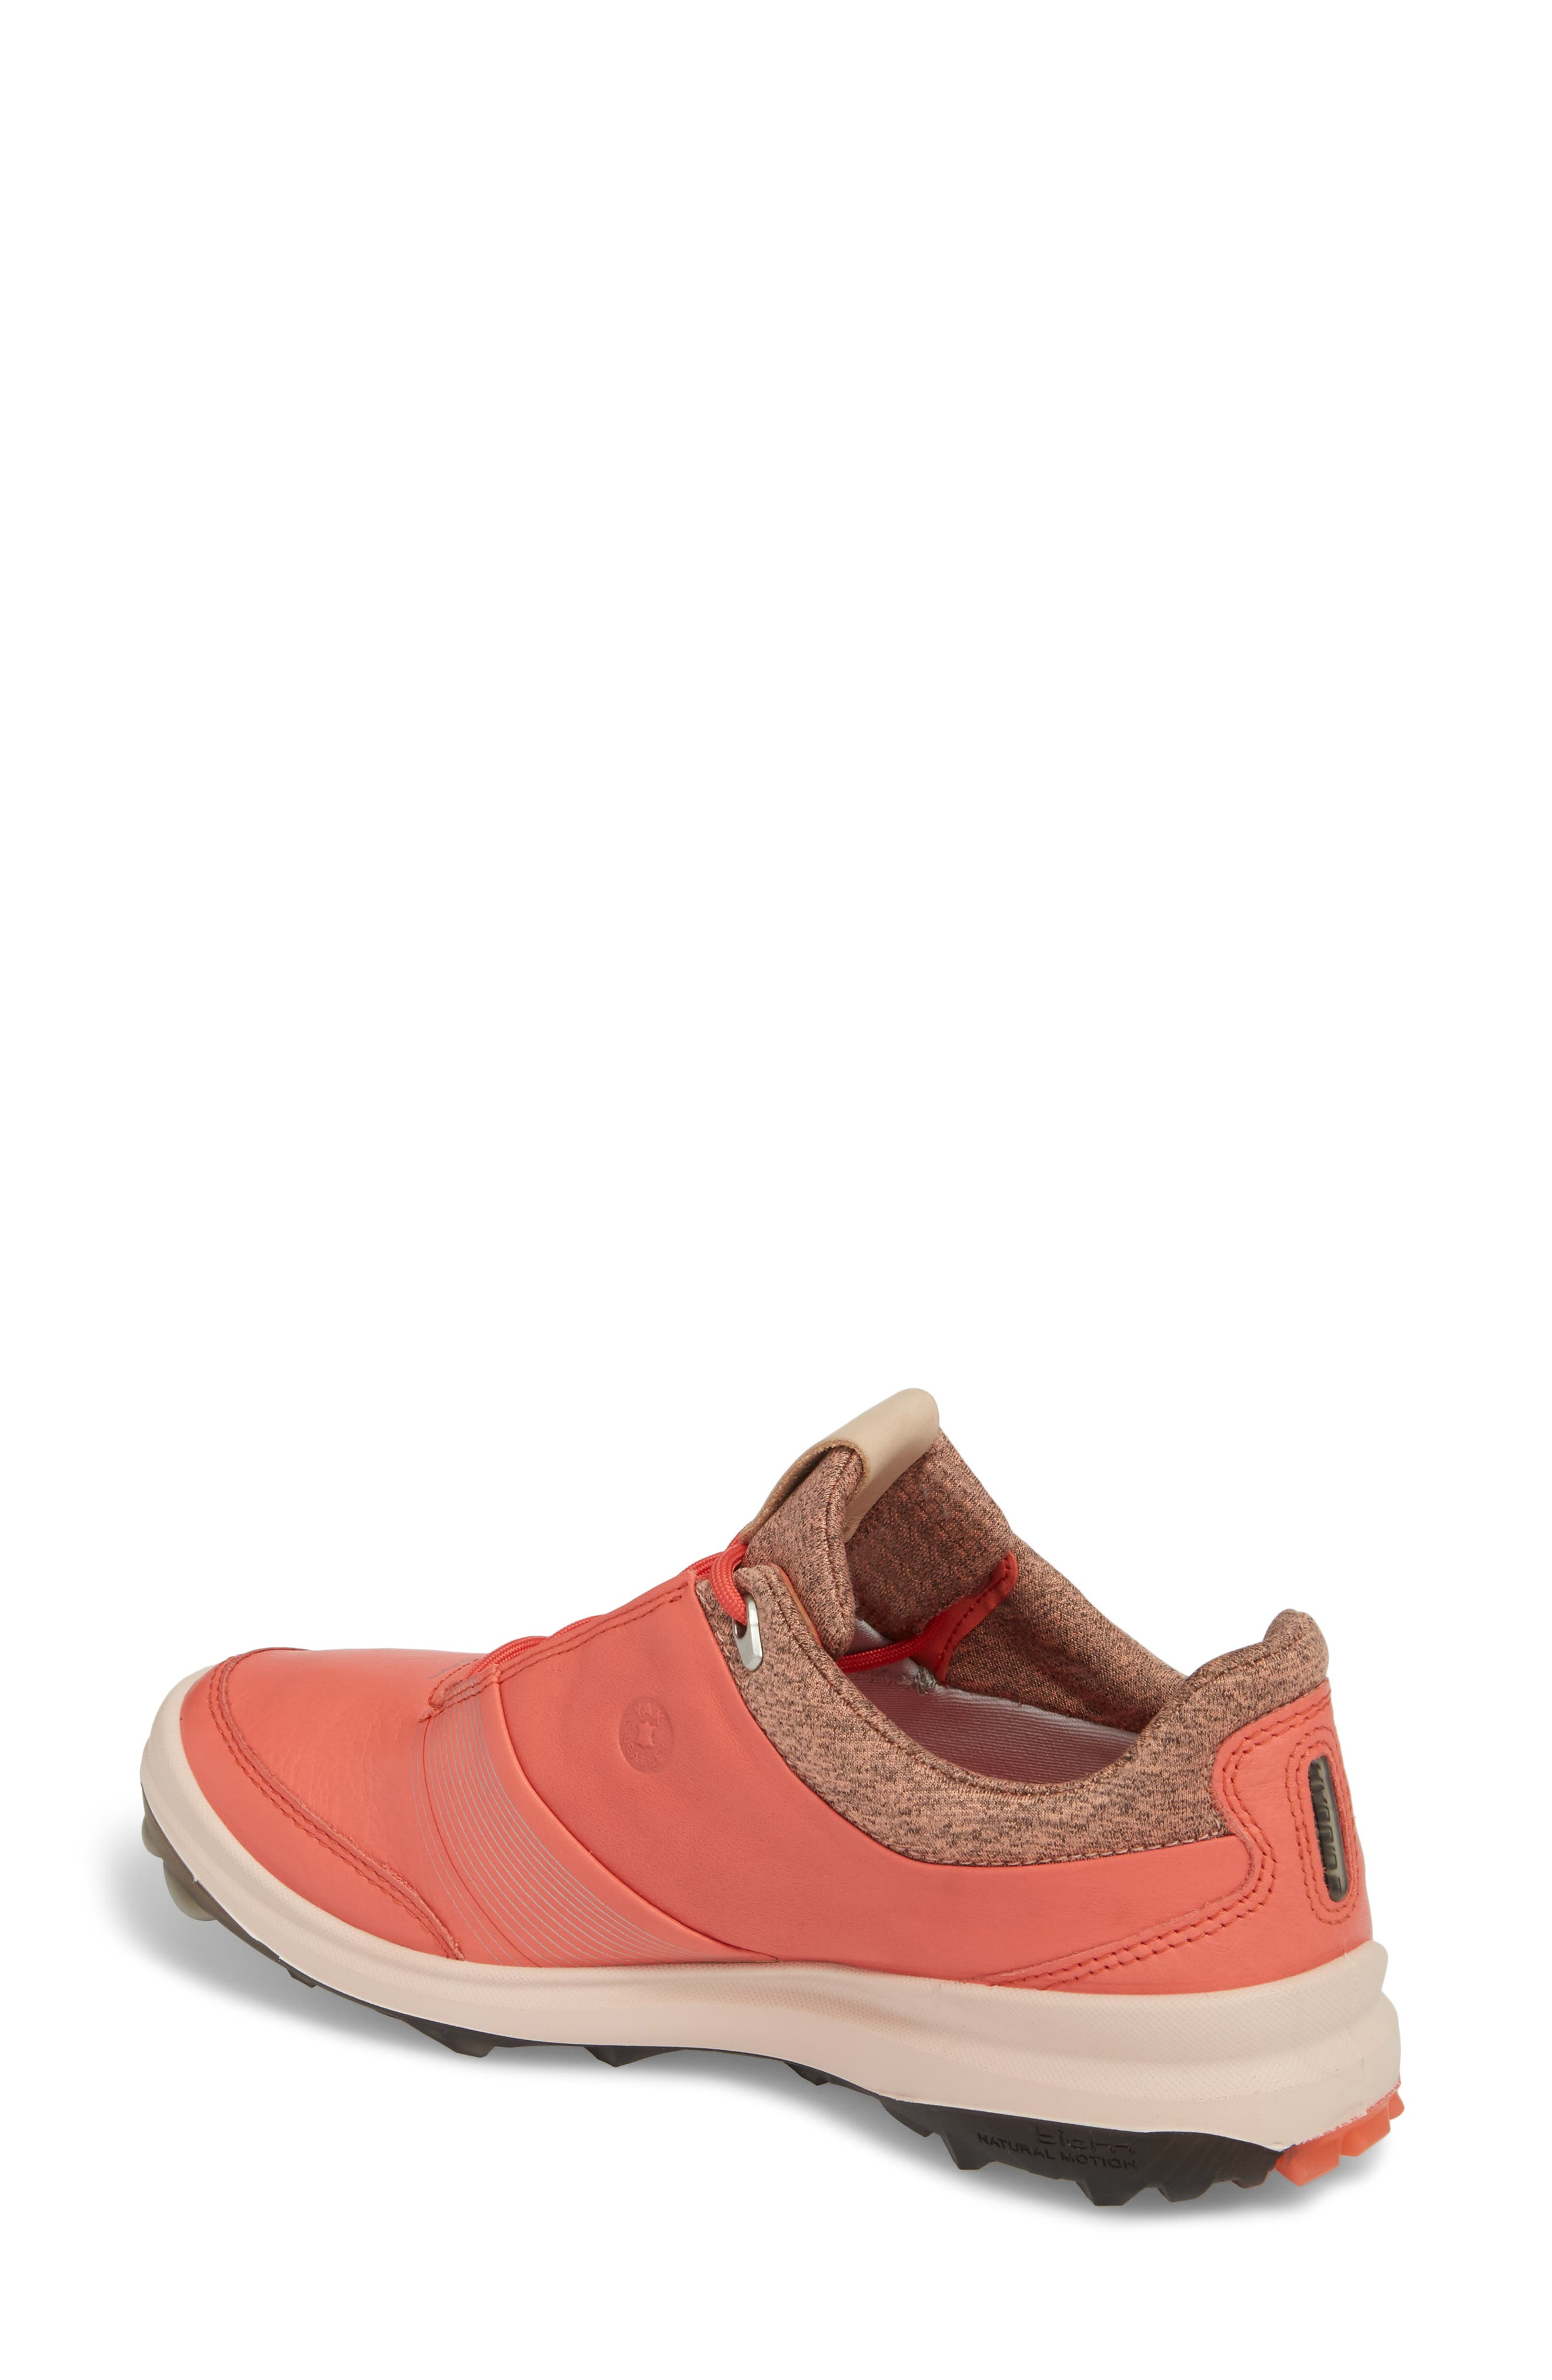 BIOM 2 Hybrid Gore-Tex<sup>®</sup> Golf Shoe,                             Alternate thumbnail 2, color,                             Spiced Coral Leather